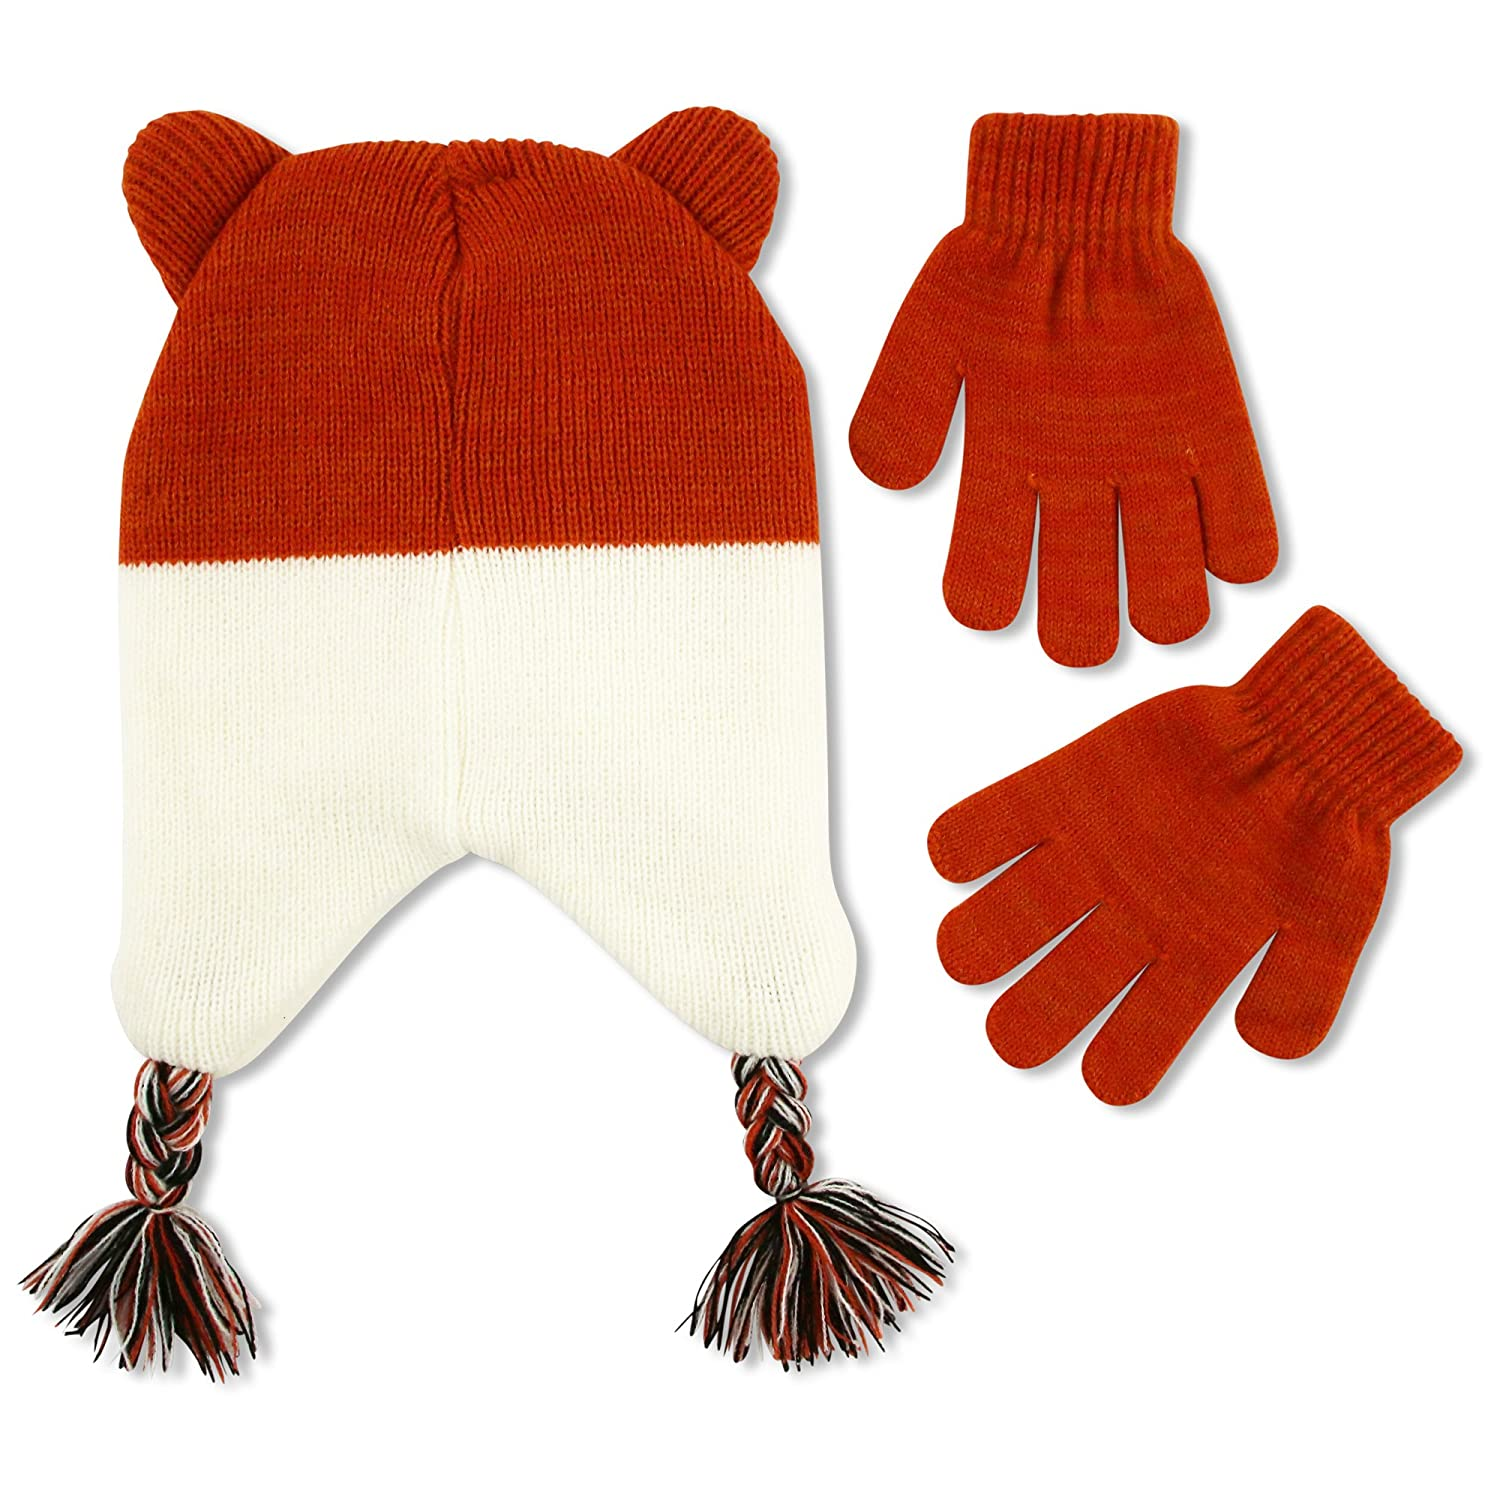 ABG Accessories Big Girls Critter Collection Acrylic Knit Winter Laplander Hat and Matching Glove Set